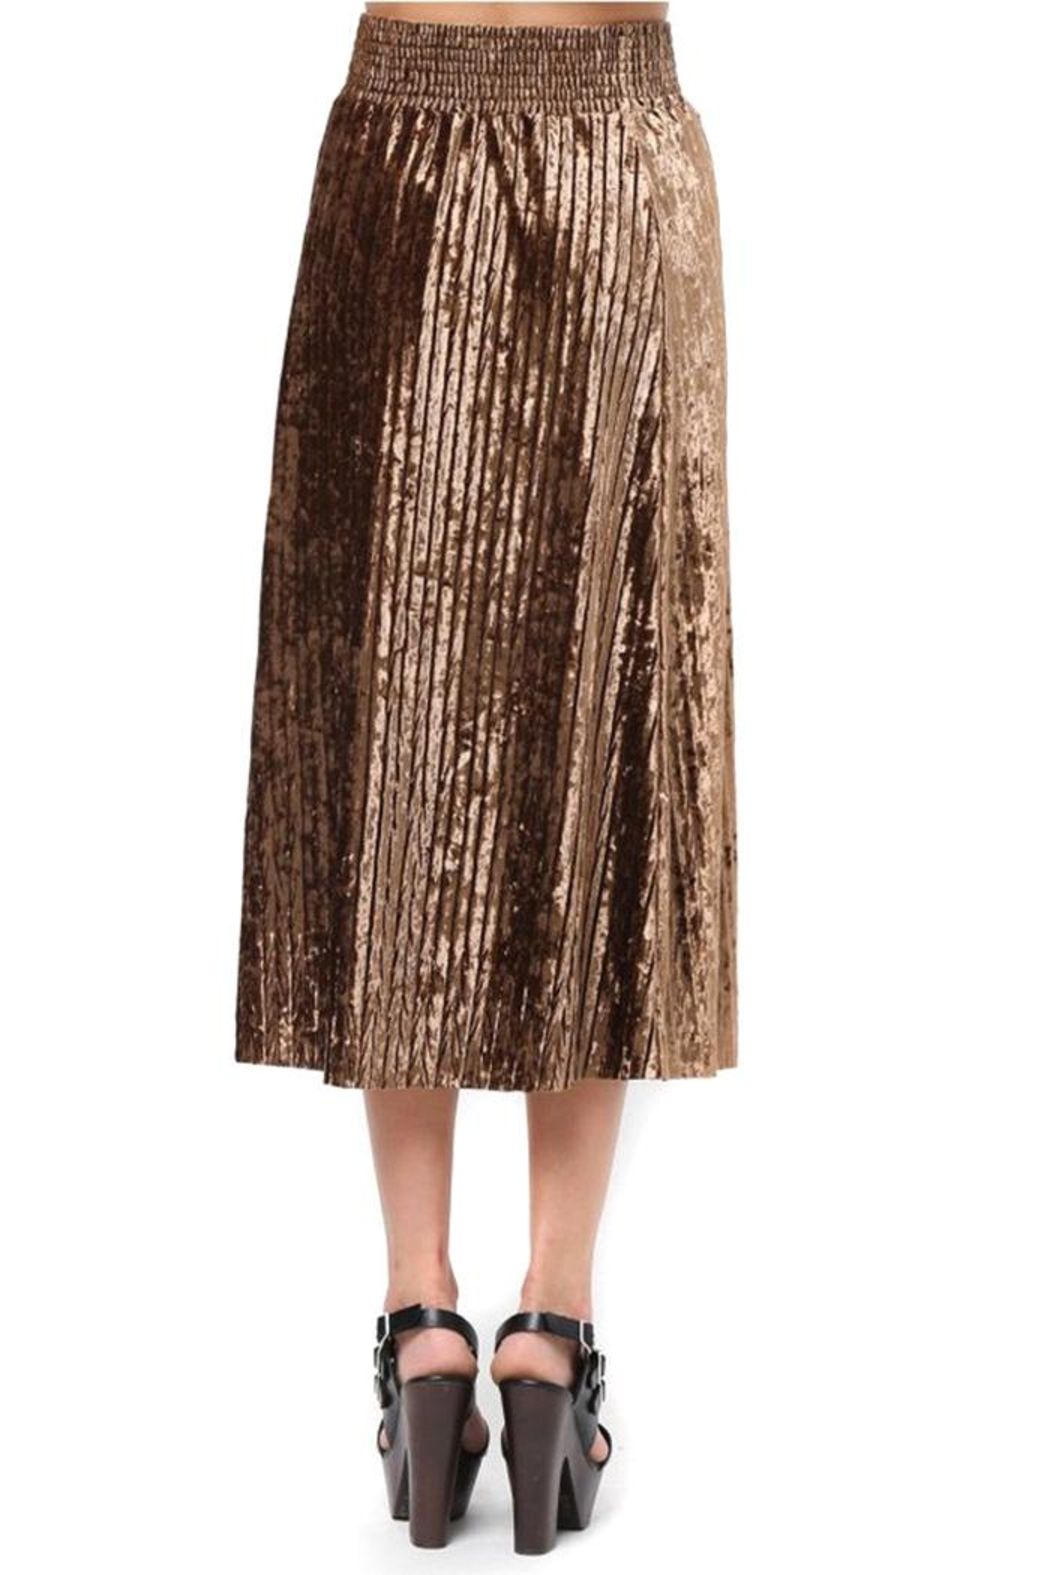 Very J Velvet Pleated Skirt - Front Full Image